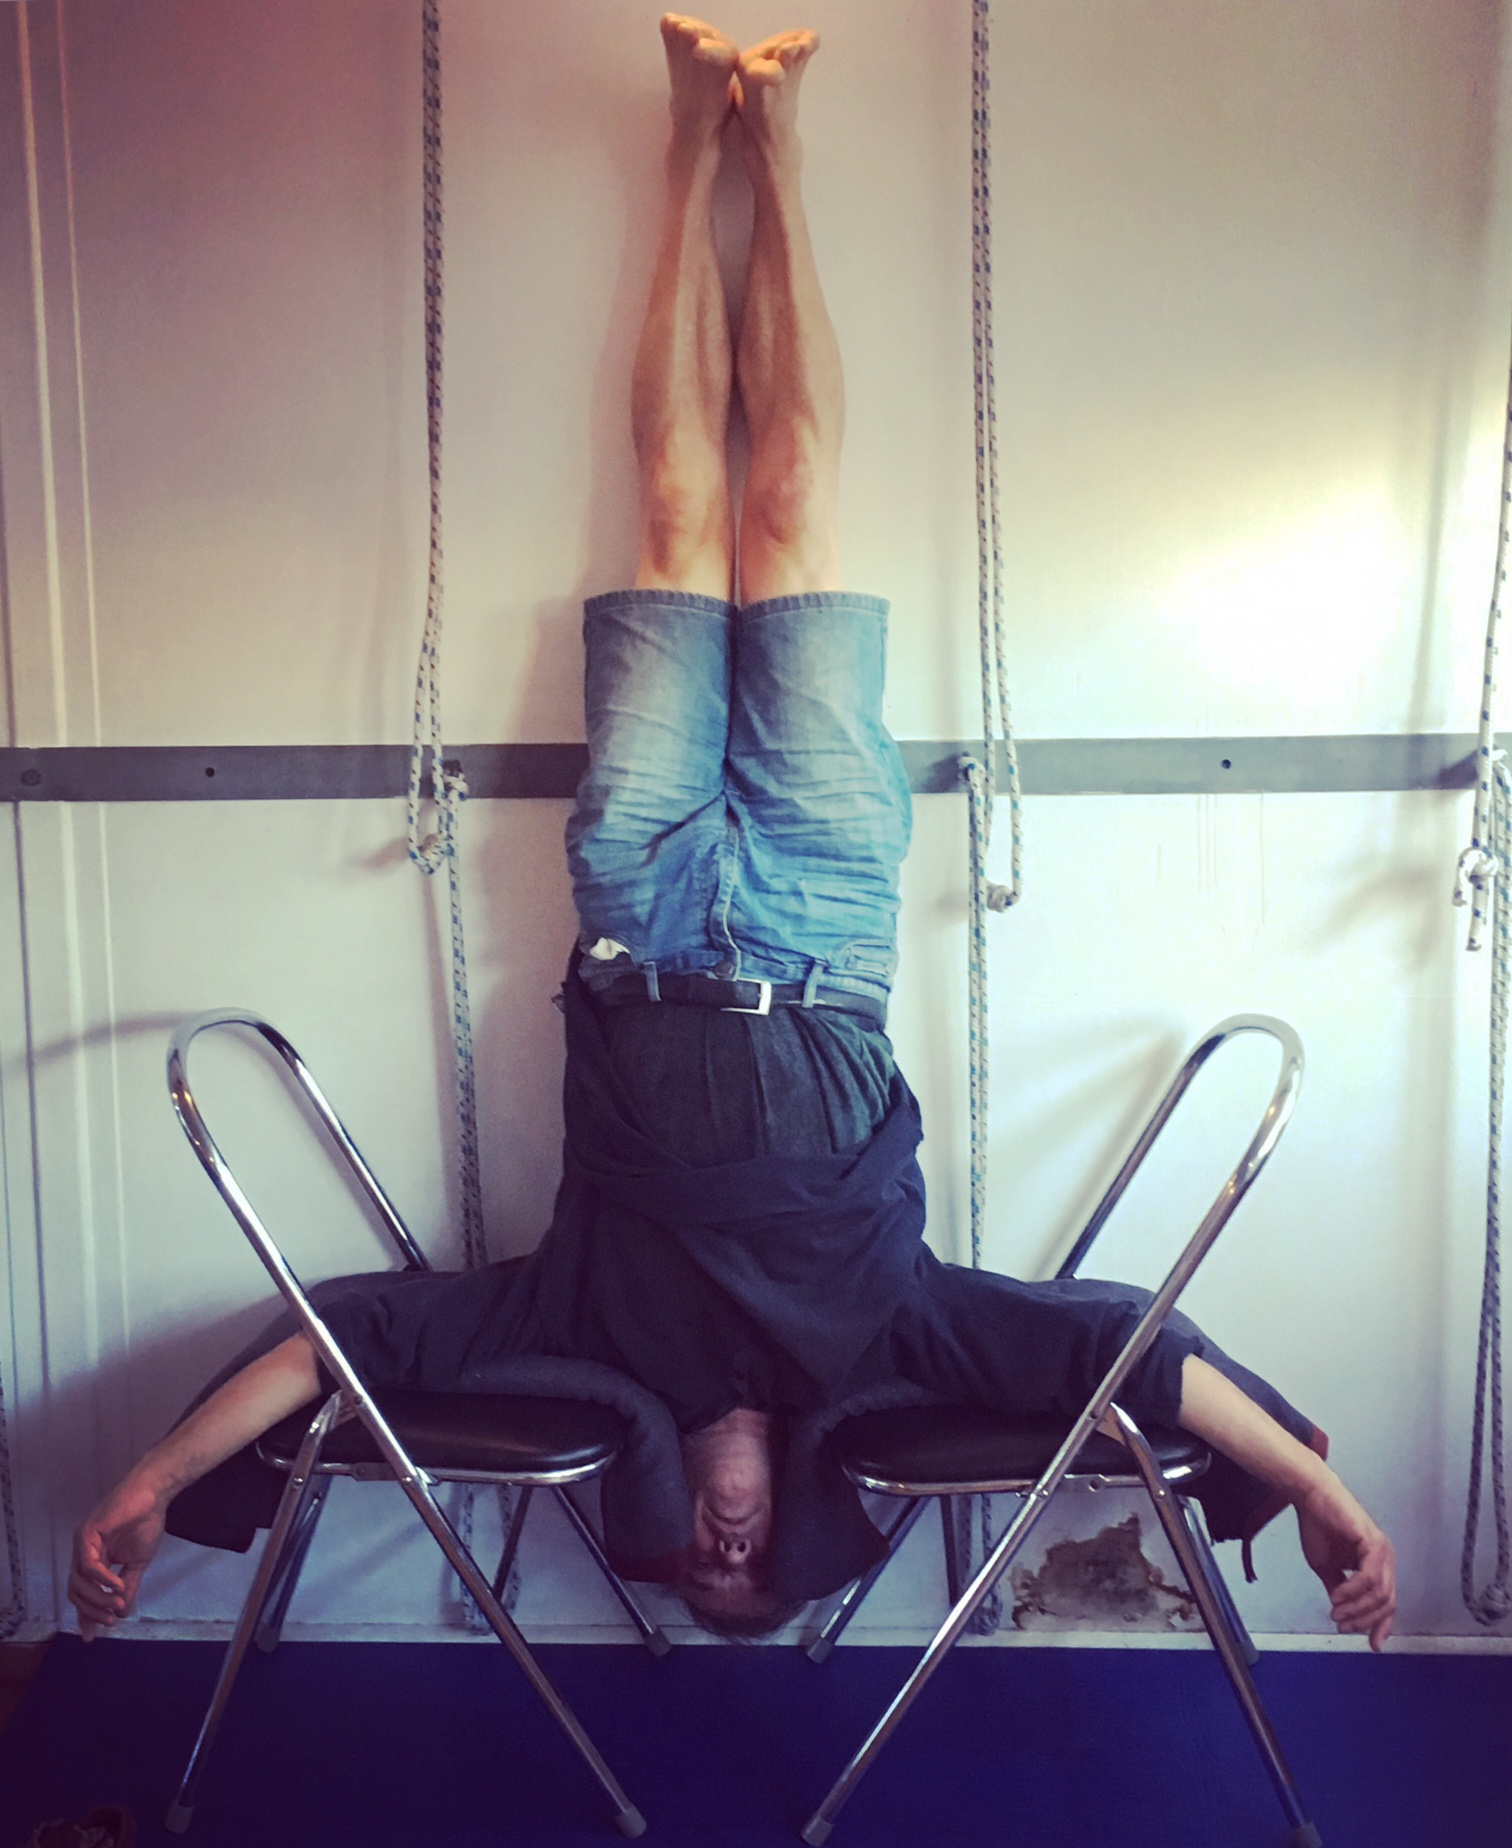 Headstand 2 chairs